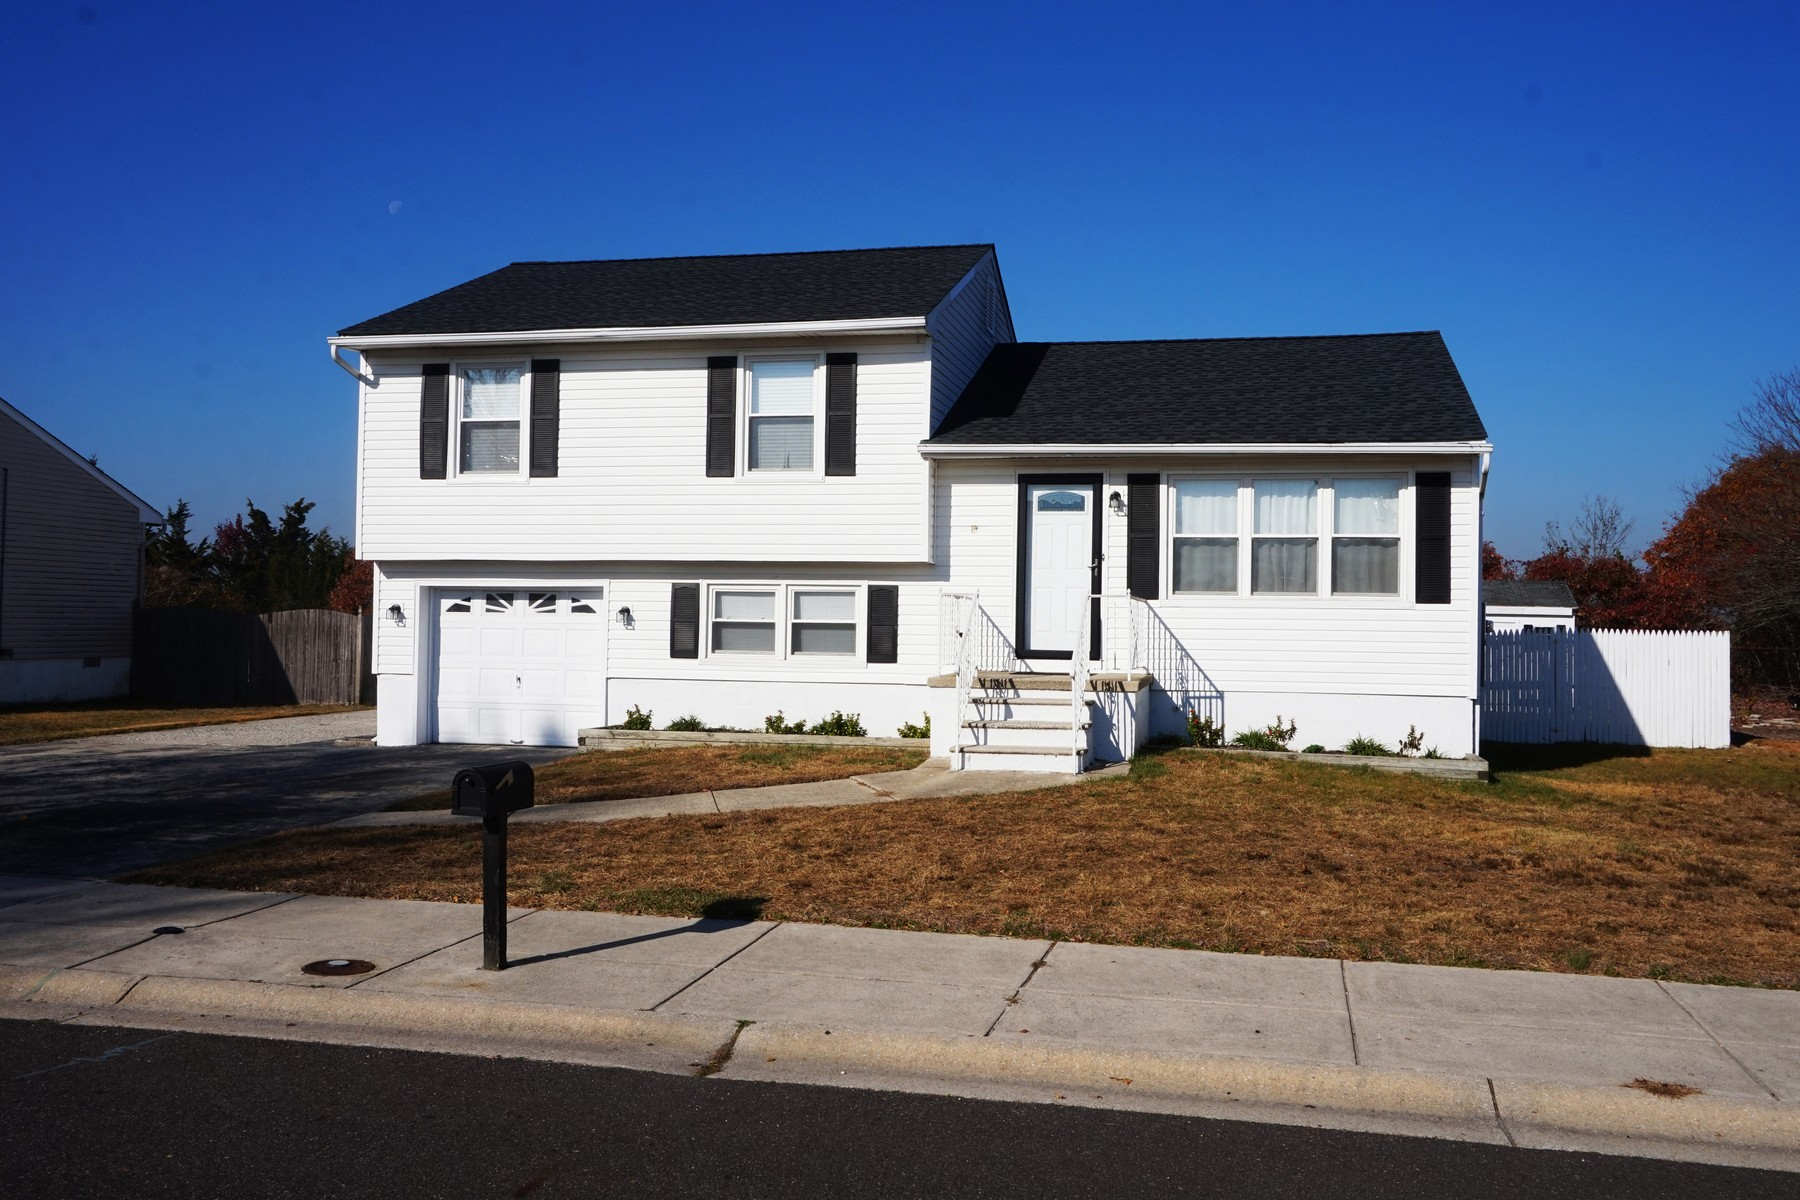 Single Family Home for Sale at Move In Ready 55 Bucknell Road Somers Point, 08244 United States